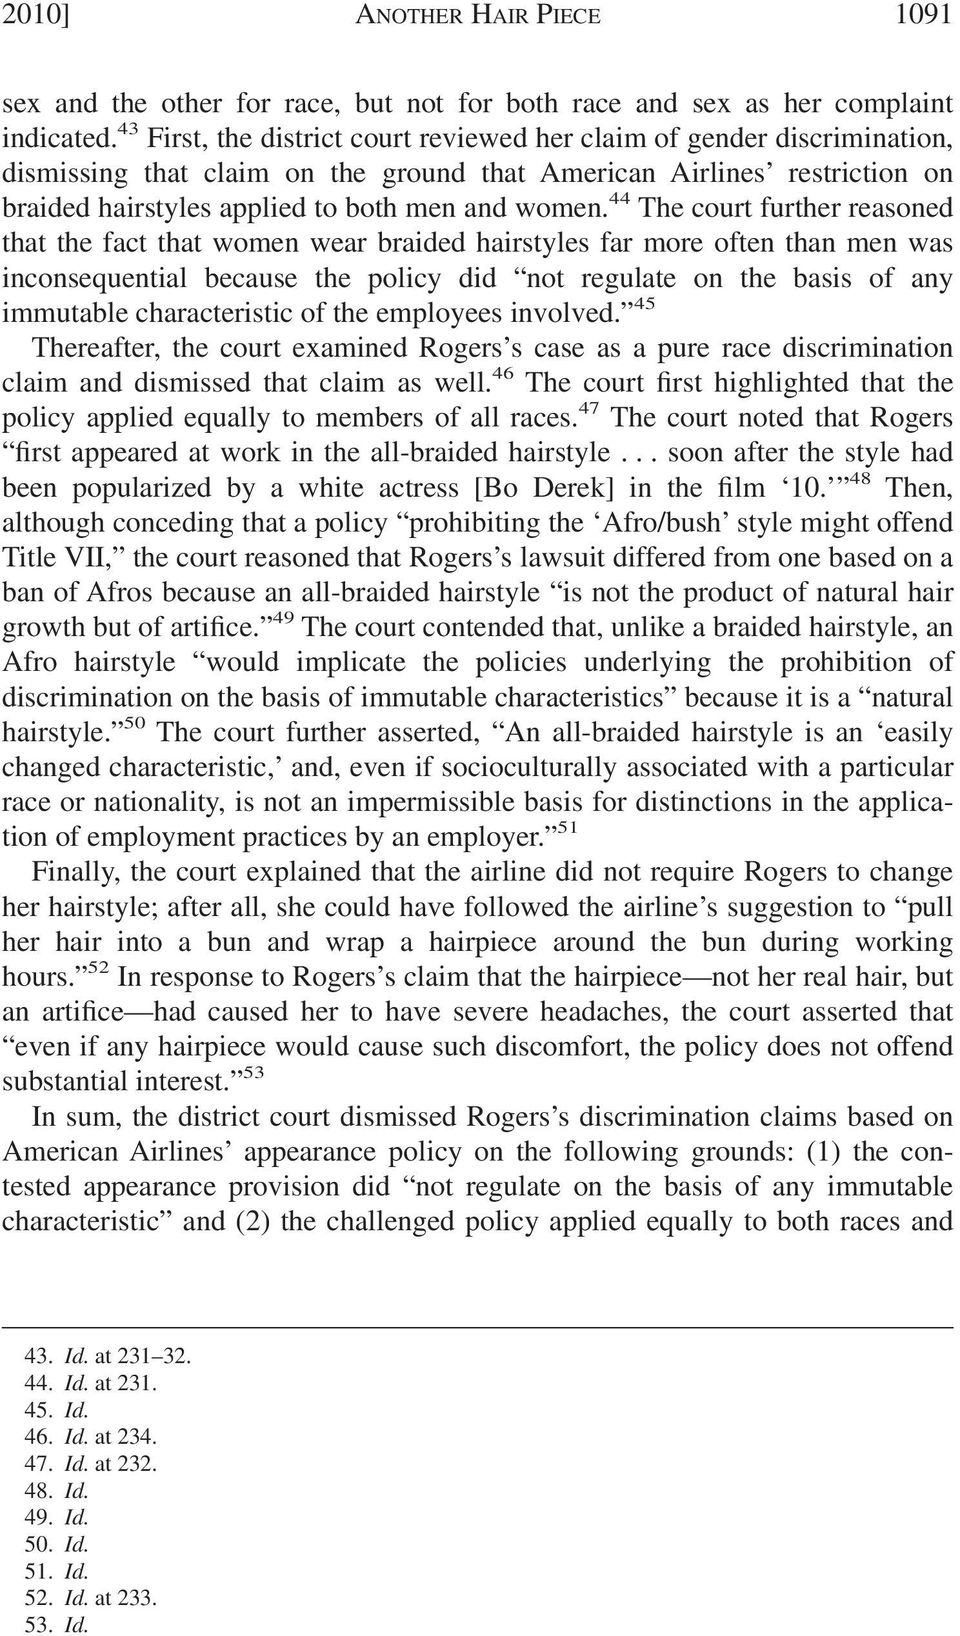 44 The court further reasoned that the fact that women wear braided hairstyles far more often than men was inconsequential because the policy did not regulate on the basis of any immutable